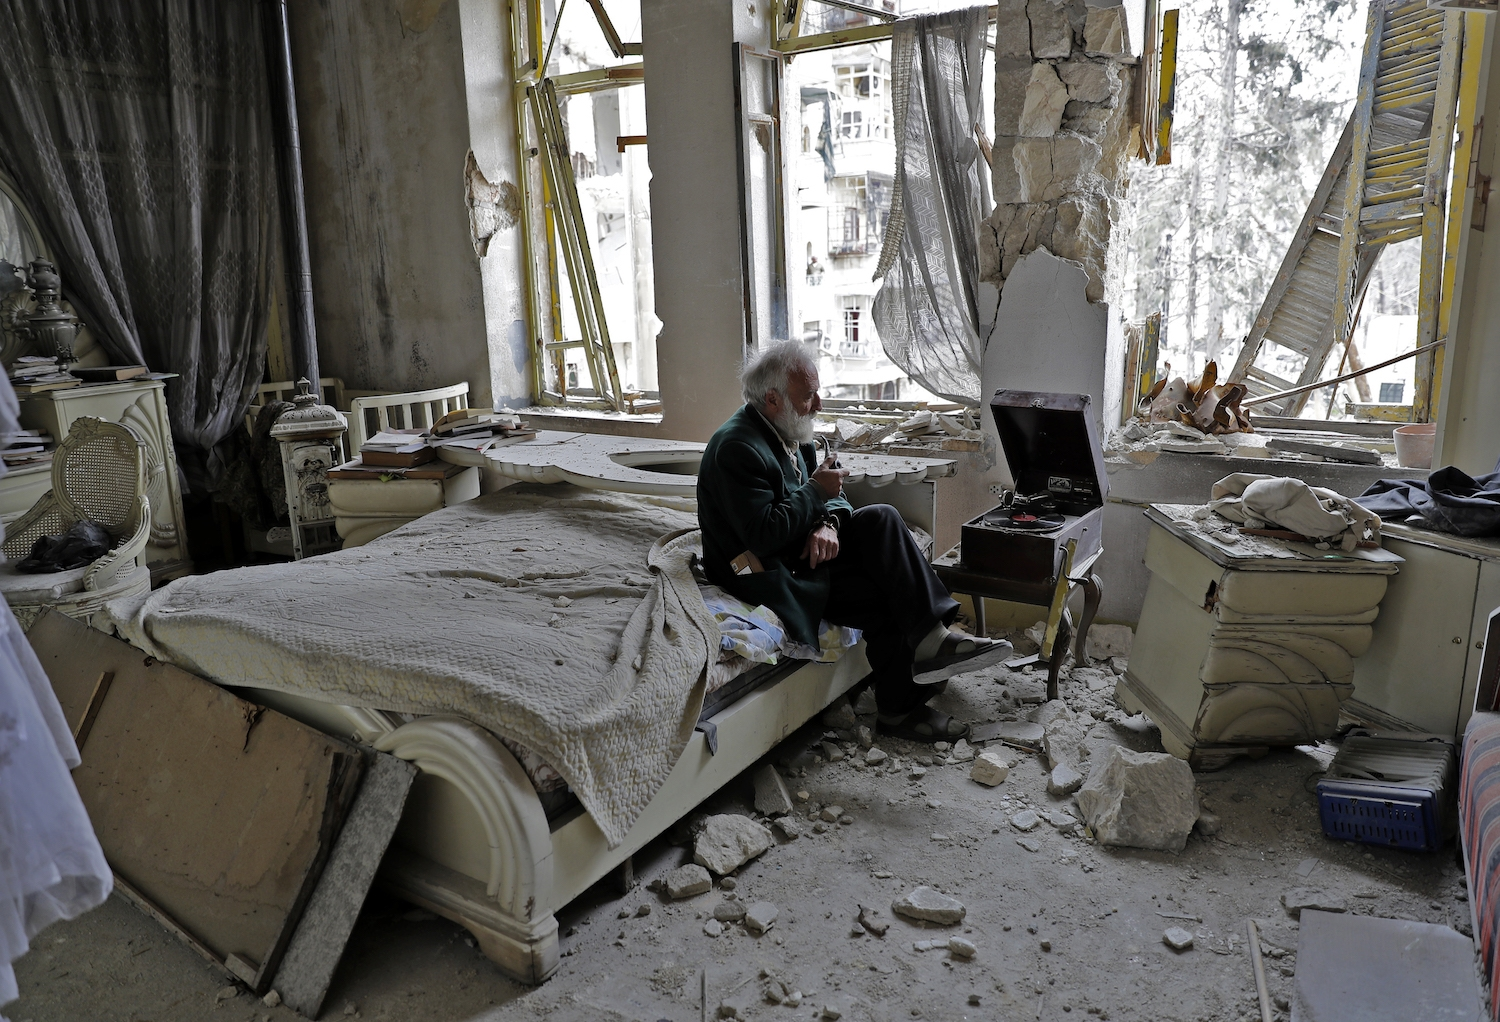 Mohammad Mohiedine Anis, 70, smokes his pipe as he sits in his destroyed bedroom listening to music on his vinyl player, gramophone, in Aleppo's formerly rebel-held al-Shaar neighbourhood.  / AFP PHOTO / JOSEPH EID